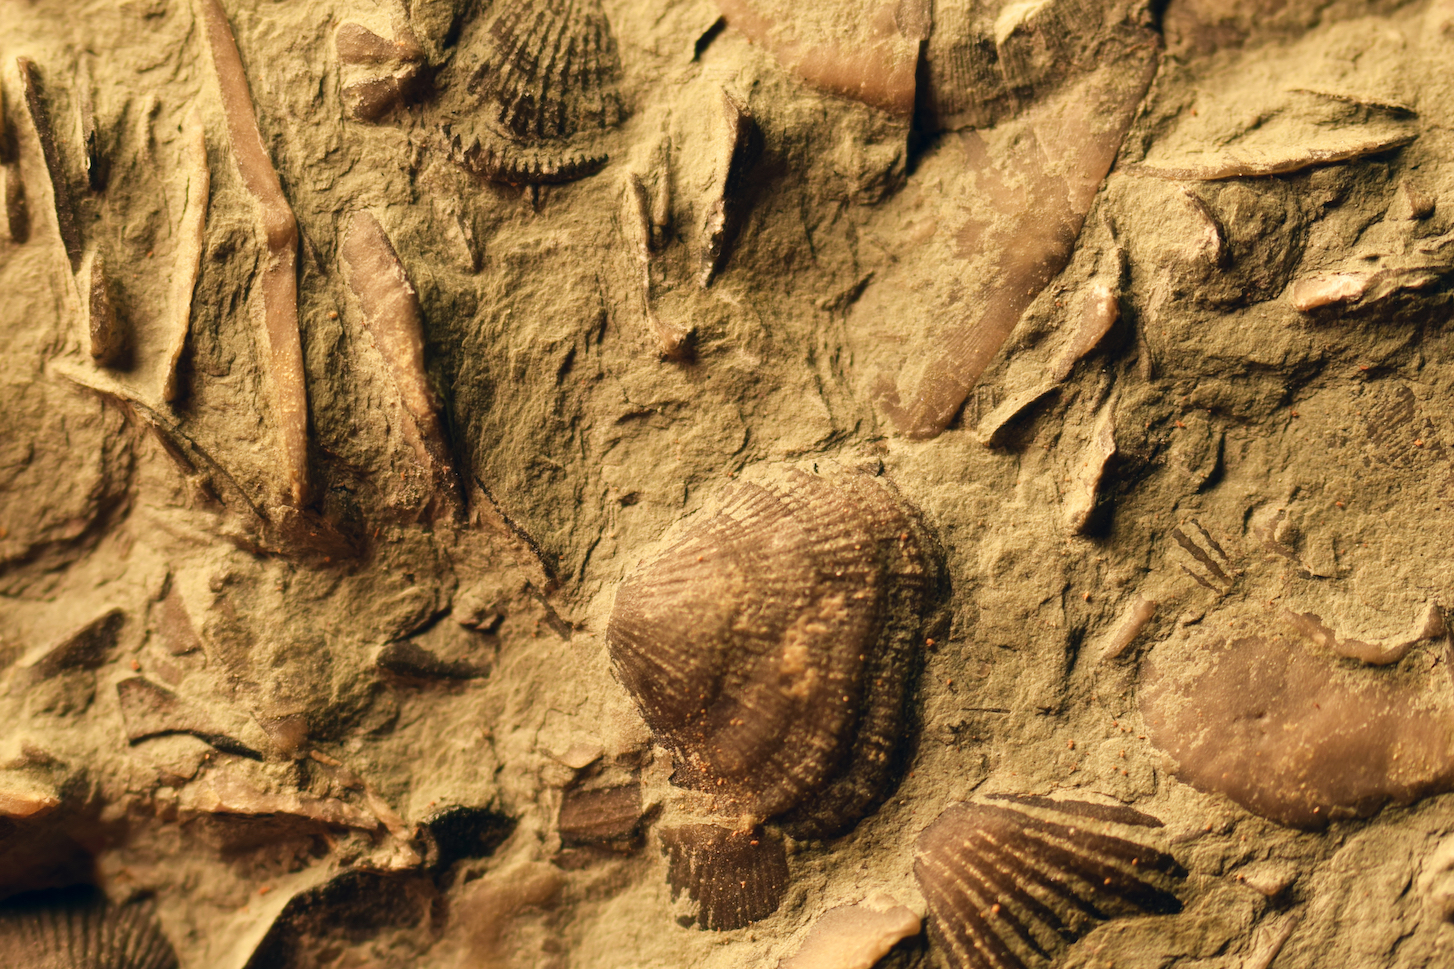 Most seem to think that preparing fossils would be a romantic, adventurous job, but the reality is that it's tedious work.